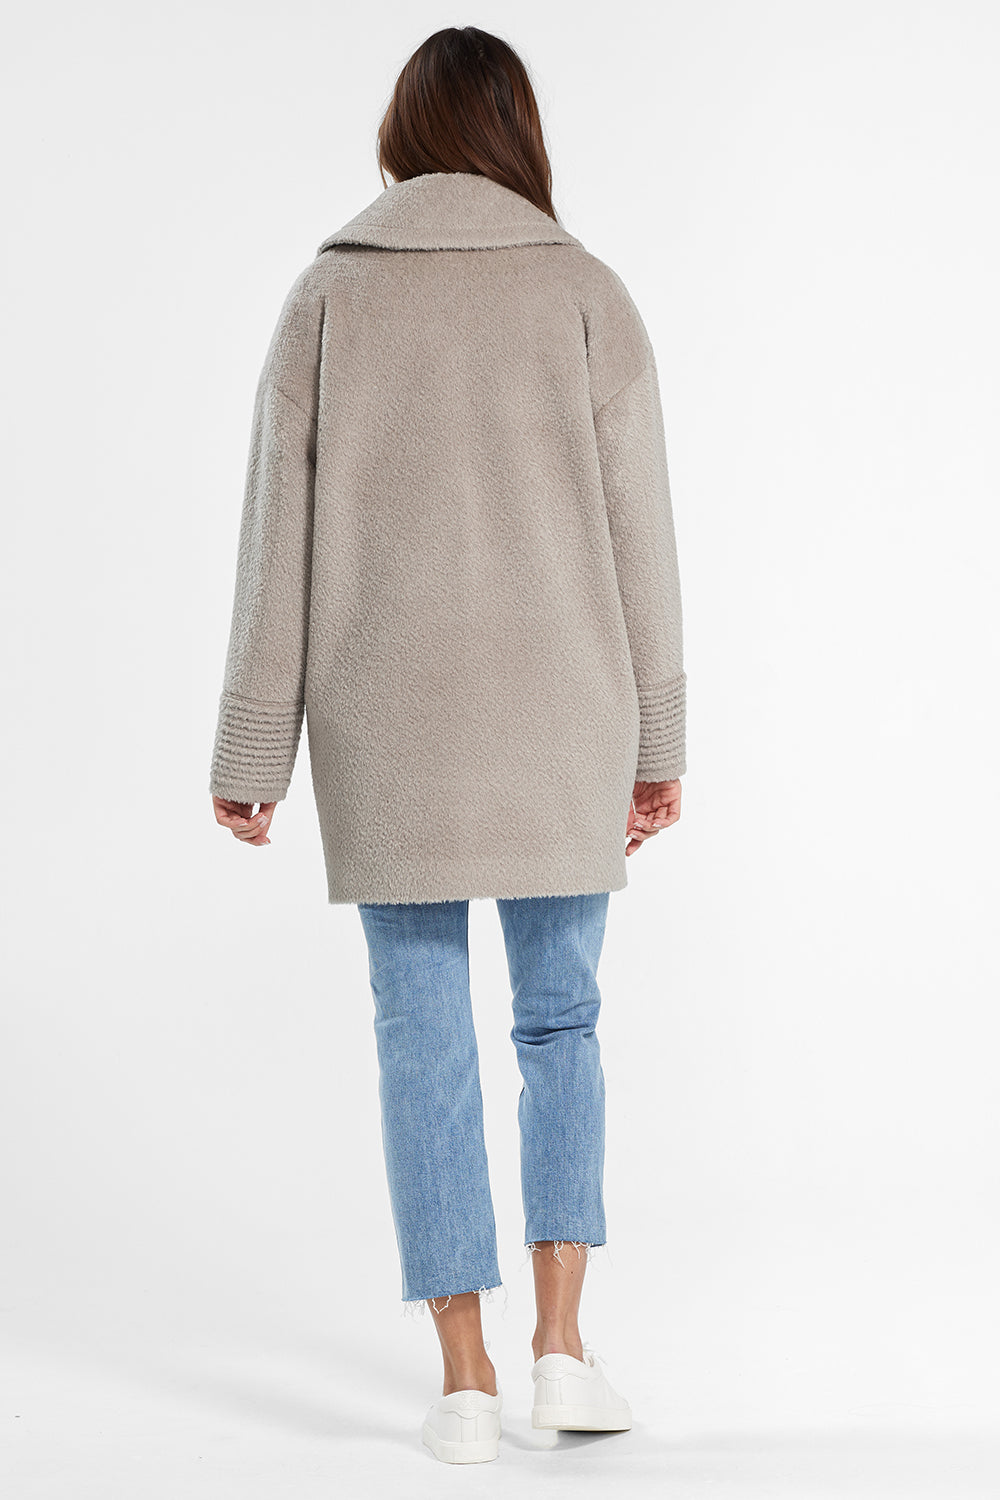 Sentaler Bouclé Alpaca Mid Length Oversized Notched Collar Coat featured in Bouclé Alpaca and available in Sand. Seen from back.